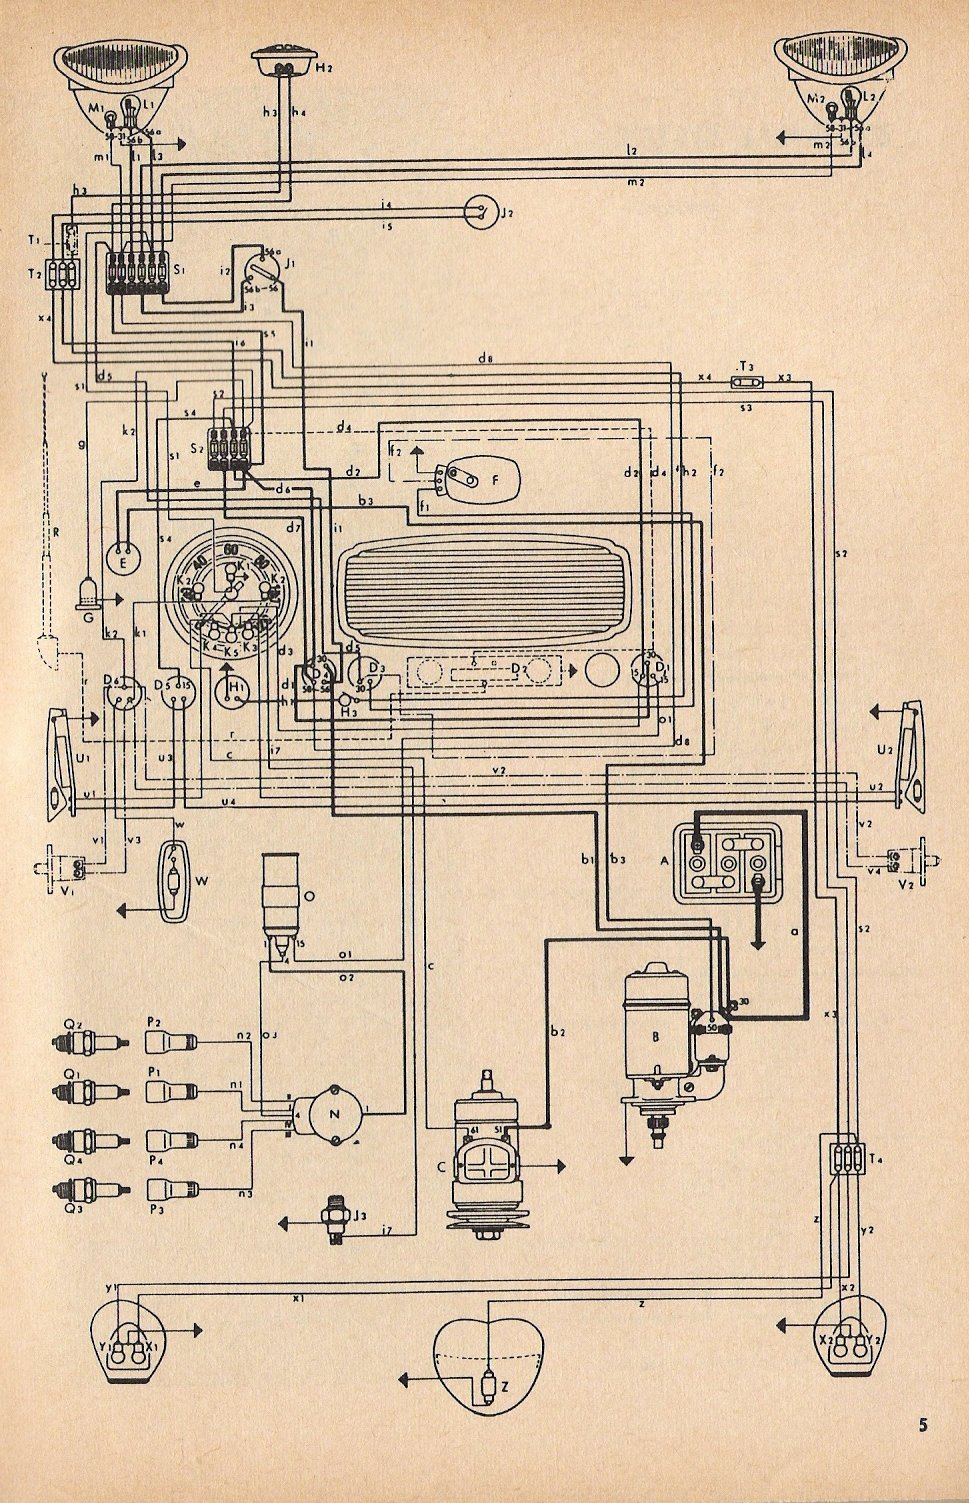 Wiringt1 on 1962 vw wiring diagram